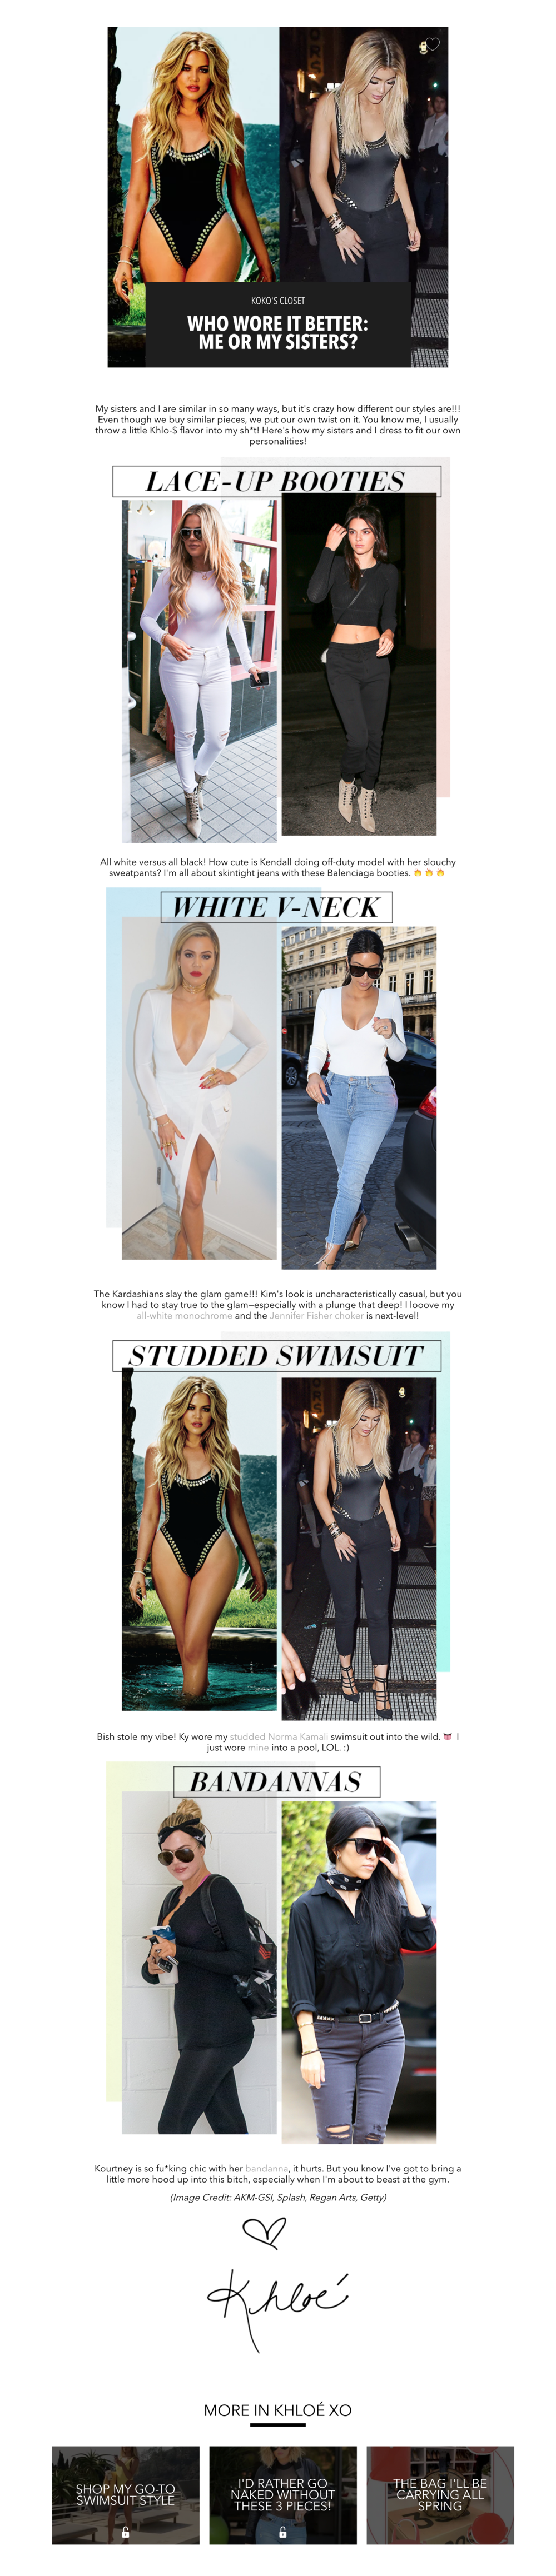 screencapture-khloewithak-xo-562-khloe-kardashian-getting-dressed-koko-way-2018-06-01-13_44_07.png